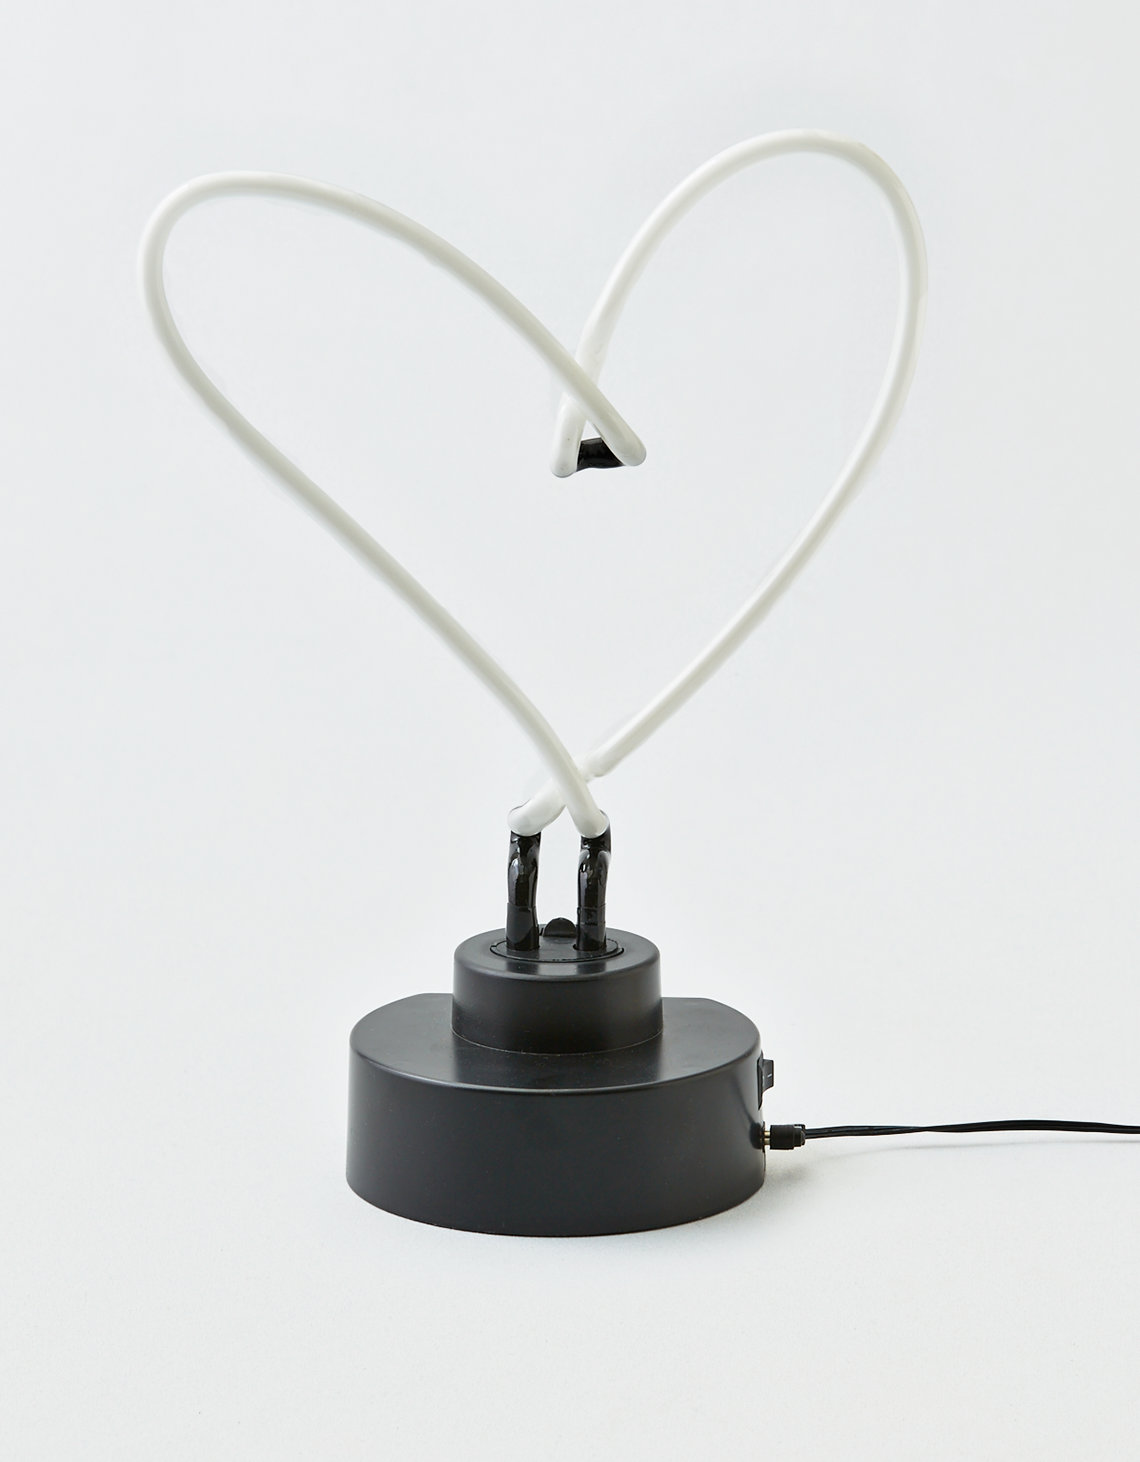 Neon Heart Lamp. Placeholder Image. Product Image